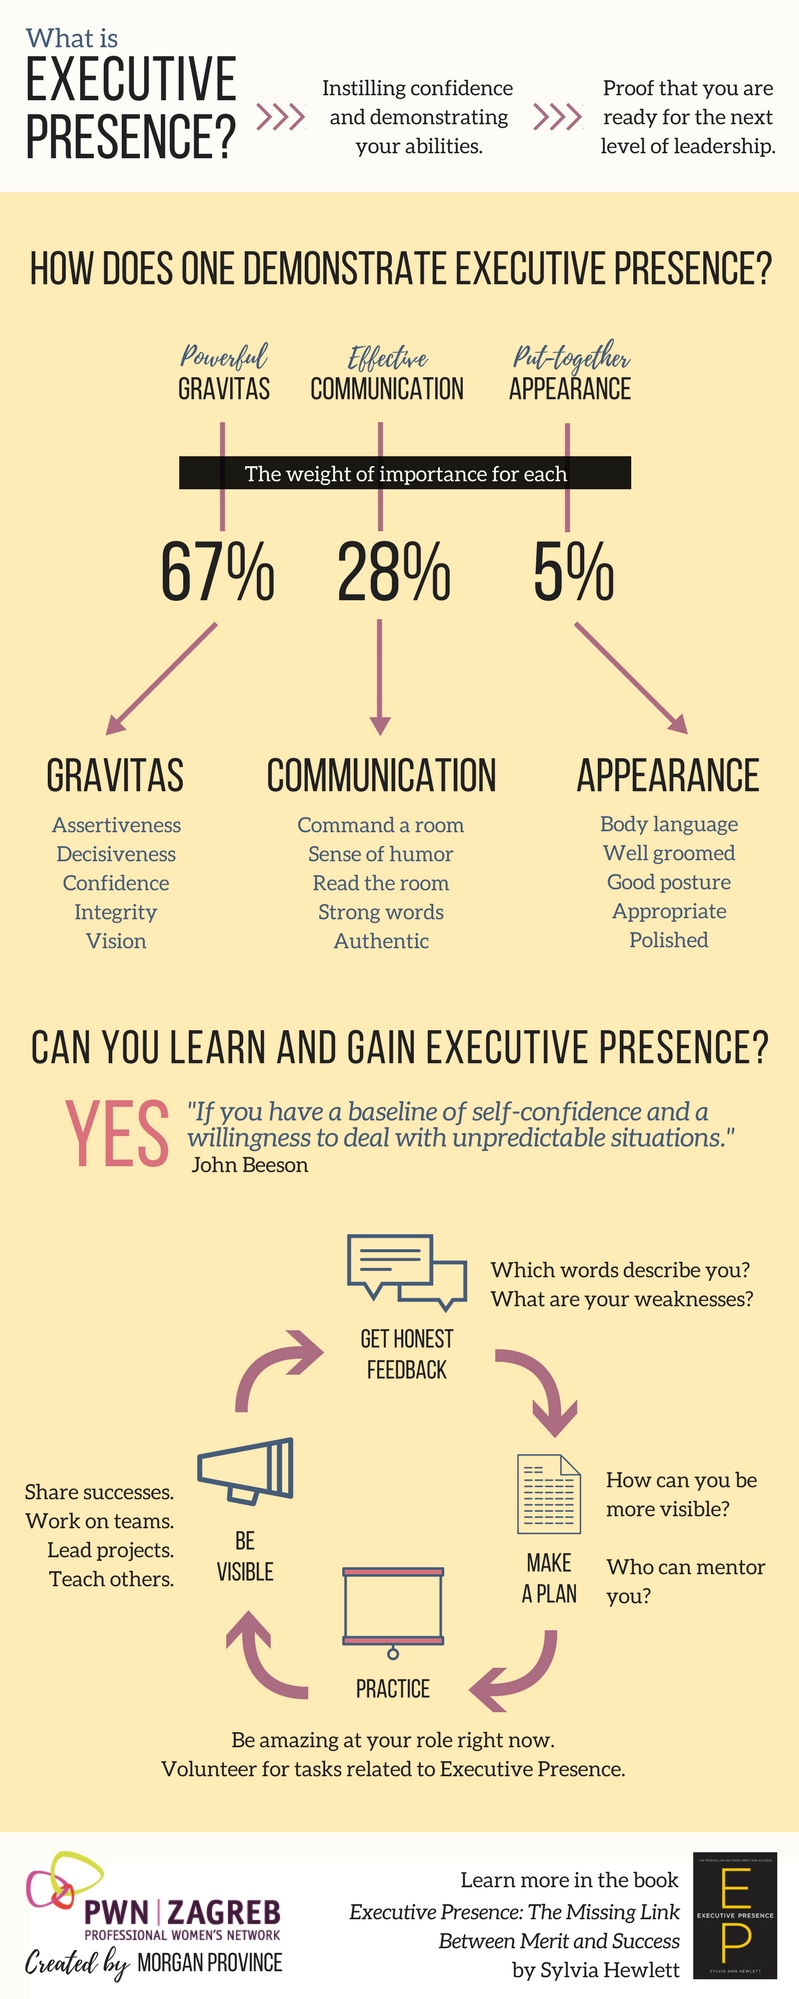 EXECUTIVE PRESENCE - The Professional Network of Women Zagreb needed content to help educate their members and sell their value to sponsors. After consulting with the President, I created this infographic for their website.